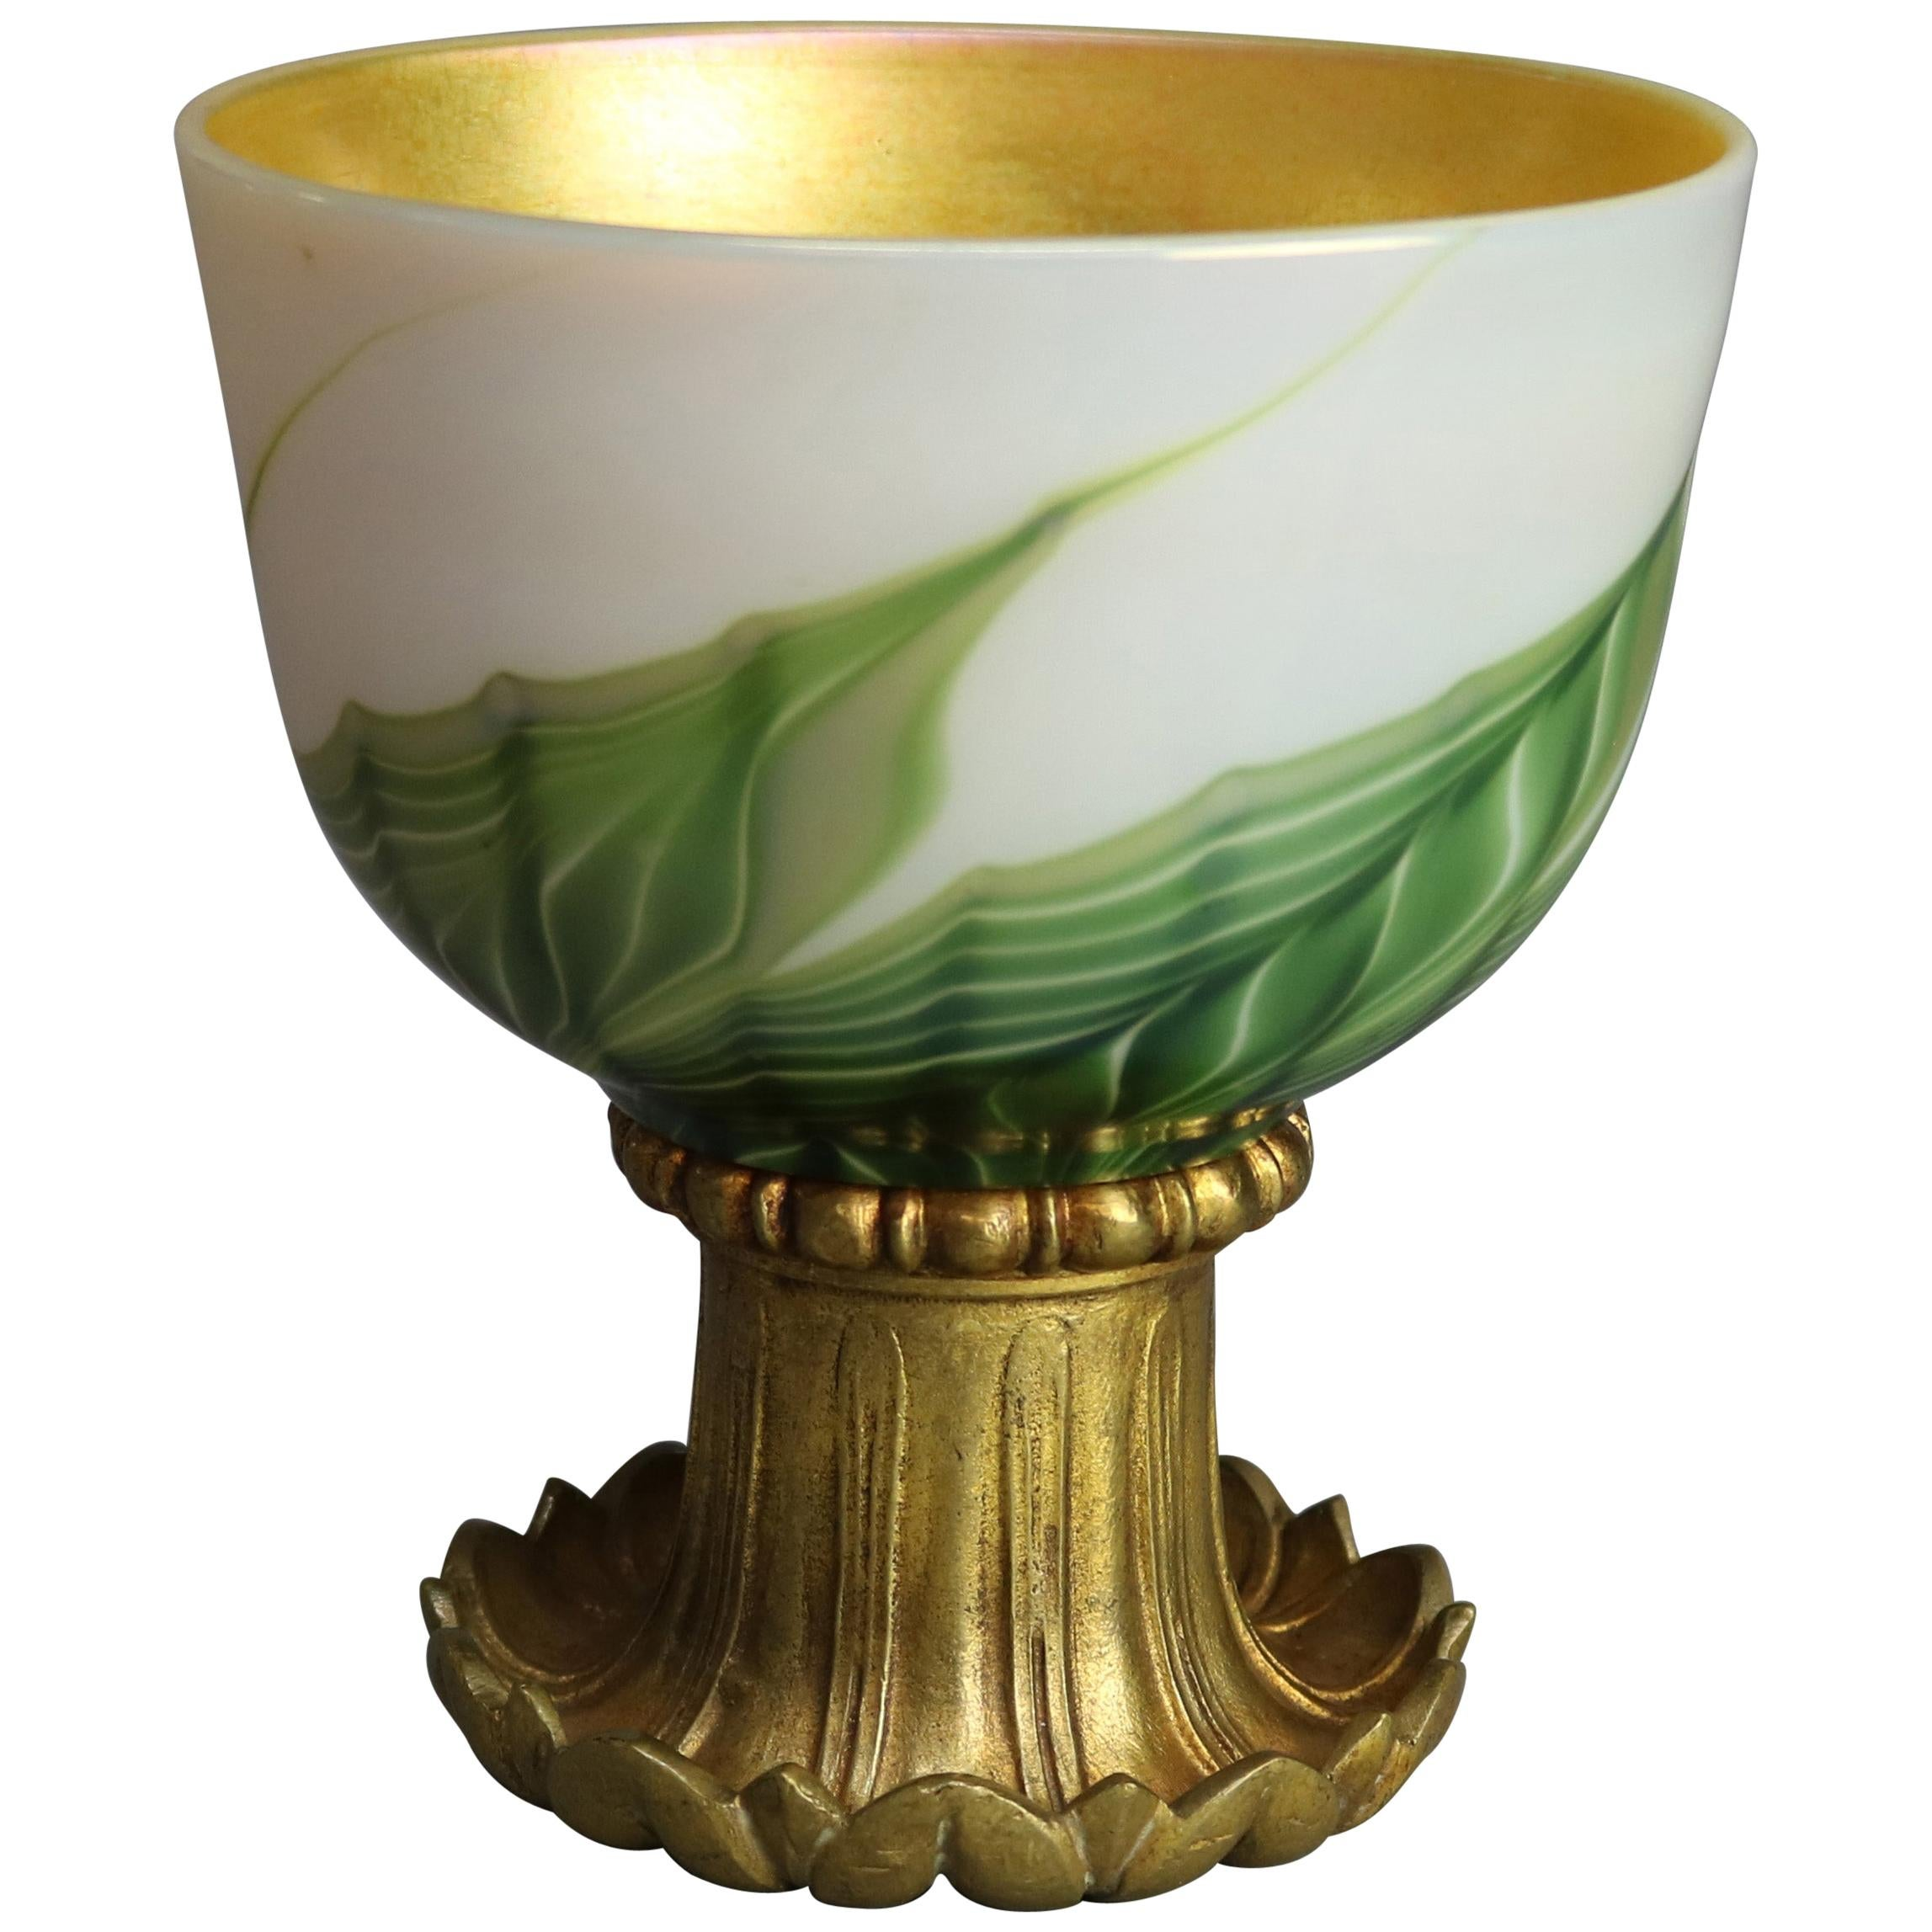 Tiffany Studio Favrile Pulled Feather Art Glass & Gilt Bronze Chalice circa 1890